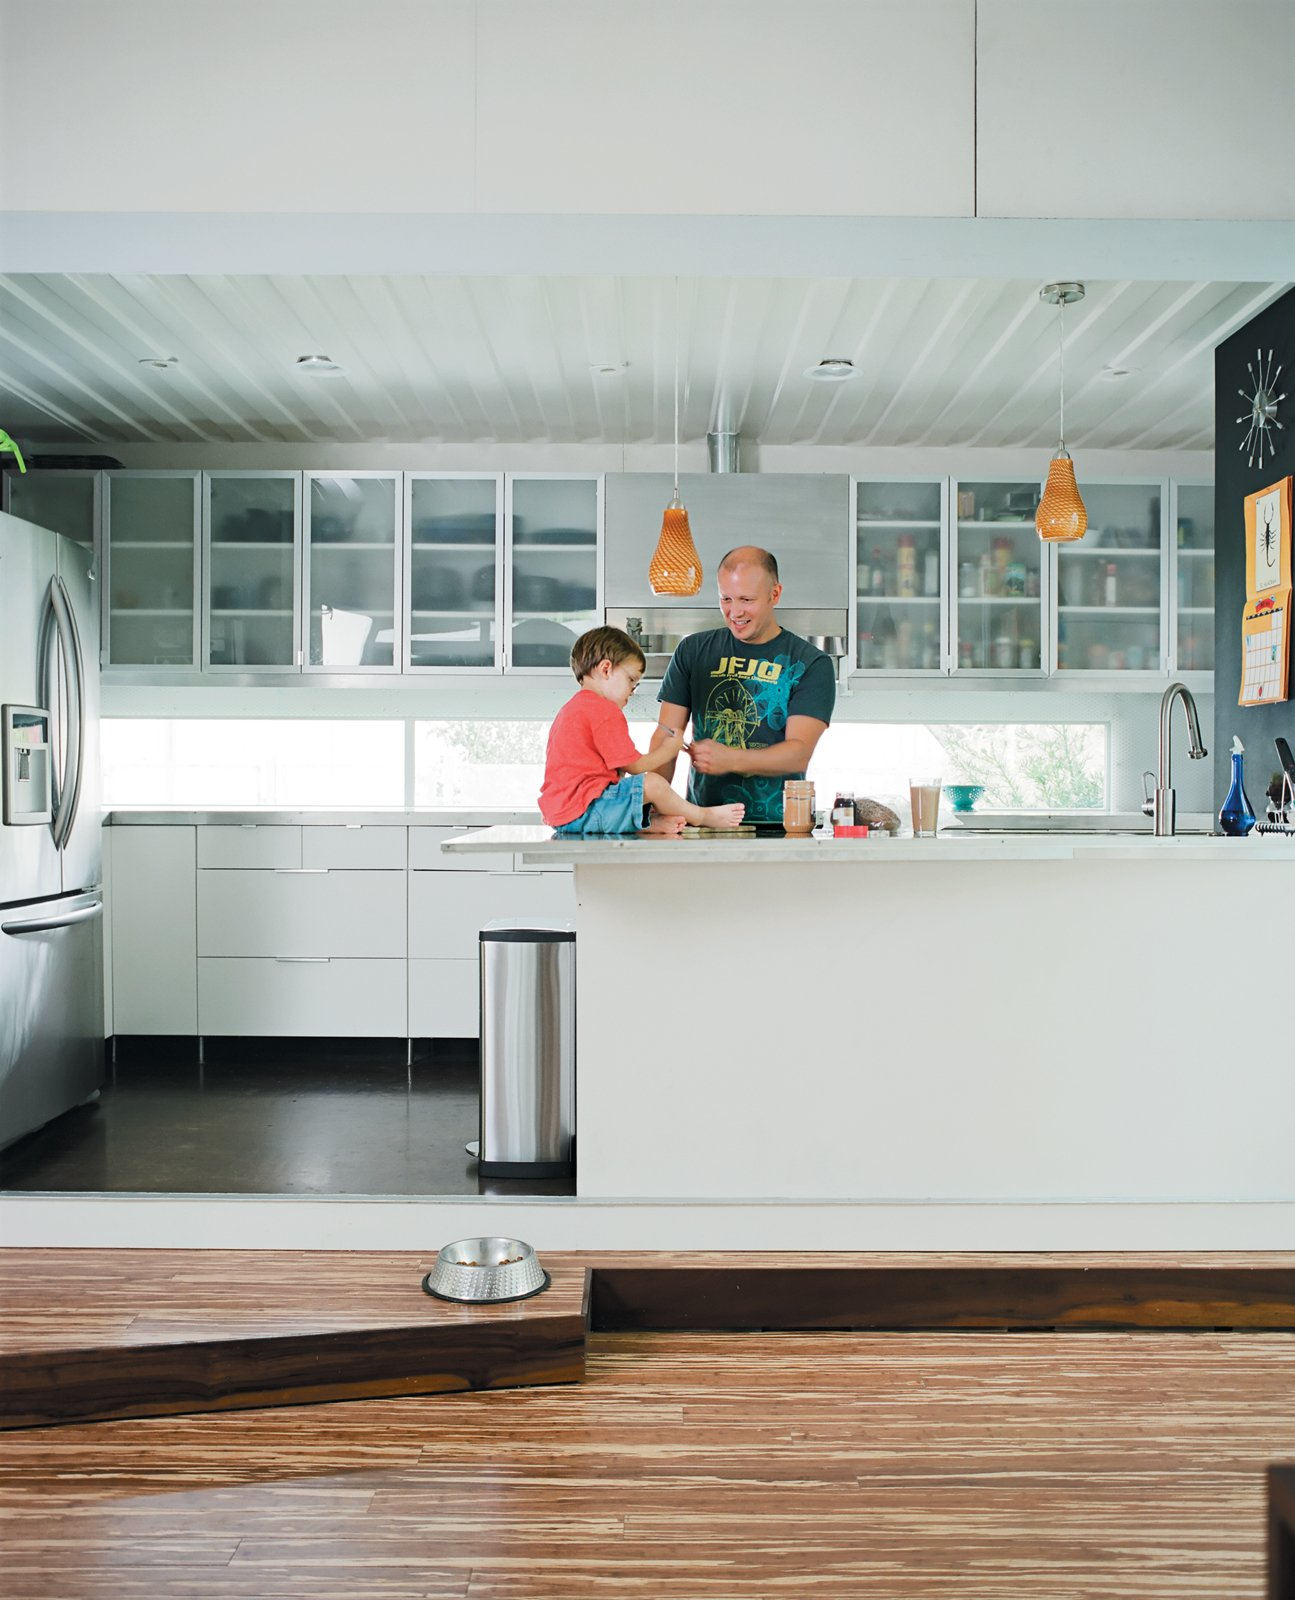 In the kitchen proper, Freeman fixes a snack while son Eli plays on the counter, one of his favorite spots in the house, second only to the kitchen steps. Tagged: Kitchen and White Cabinet.  Shipping Containers by Dwell from The Shipping Muse